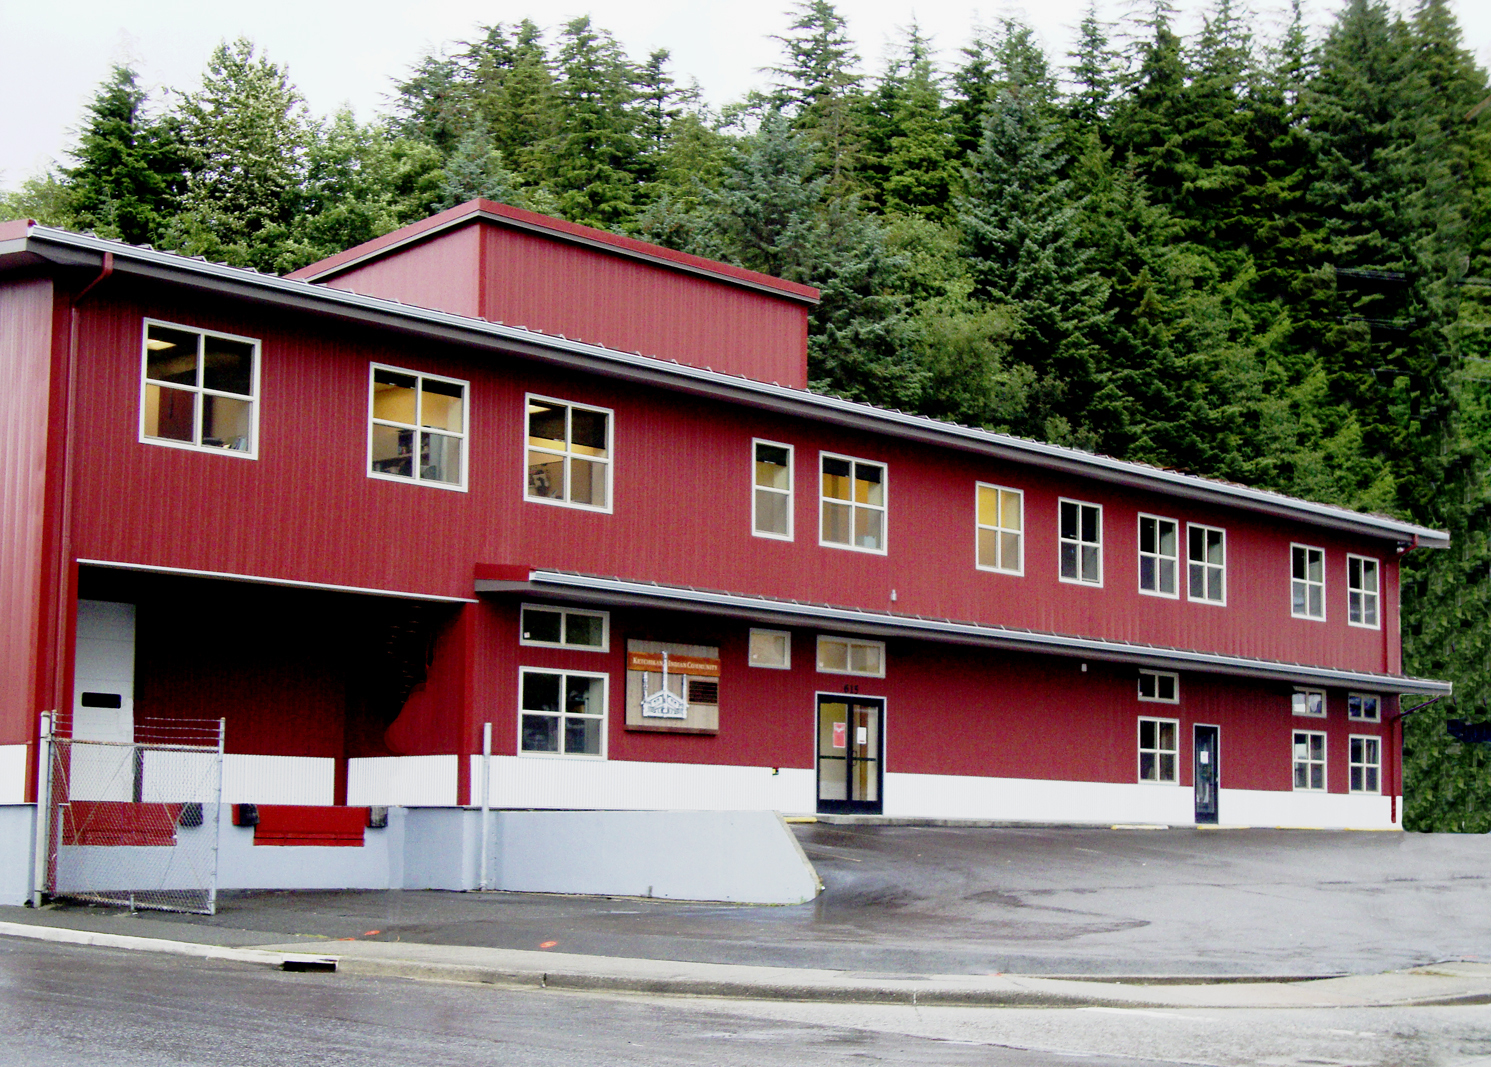 Ketchikan Indian Community